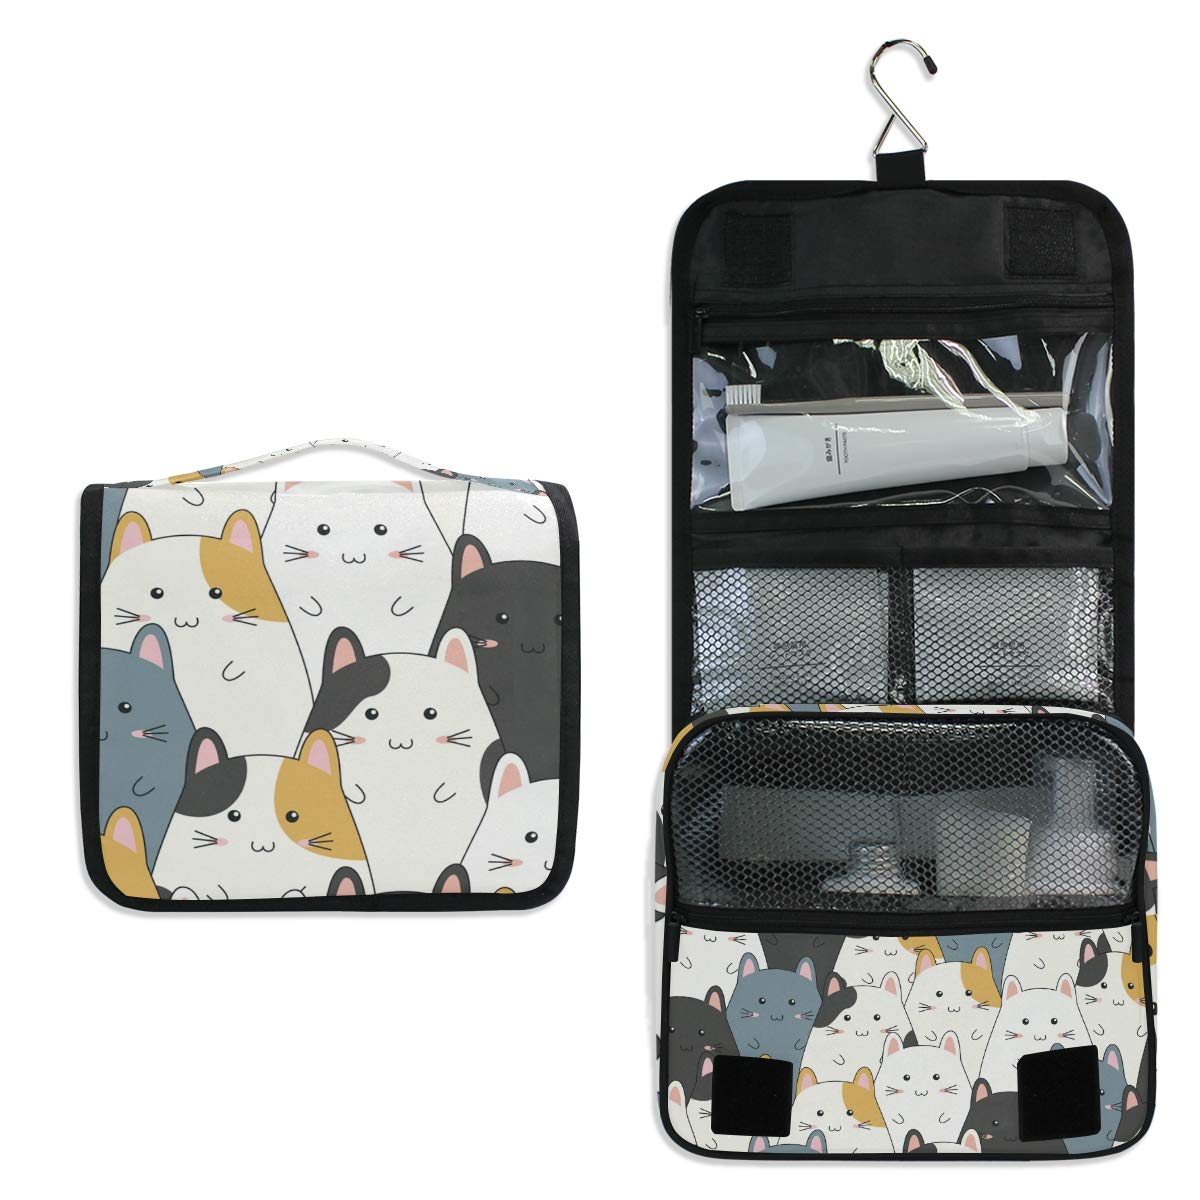 Hanging Travel Toiletry Bag - Cute Cat Waterproof Cosmetic Bag Portable Makeup Pouch for Toiletries Bathroom